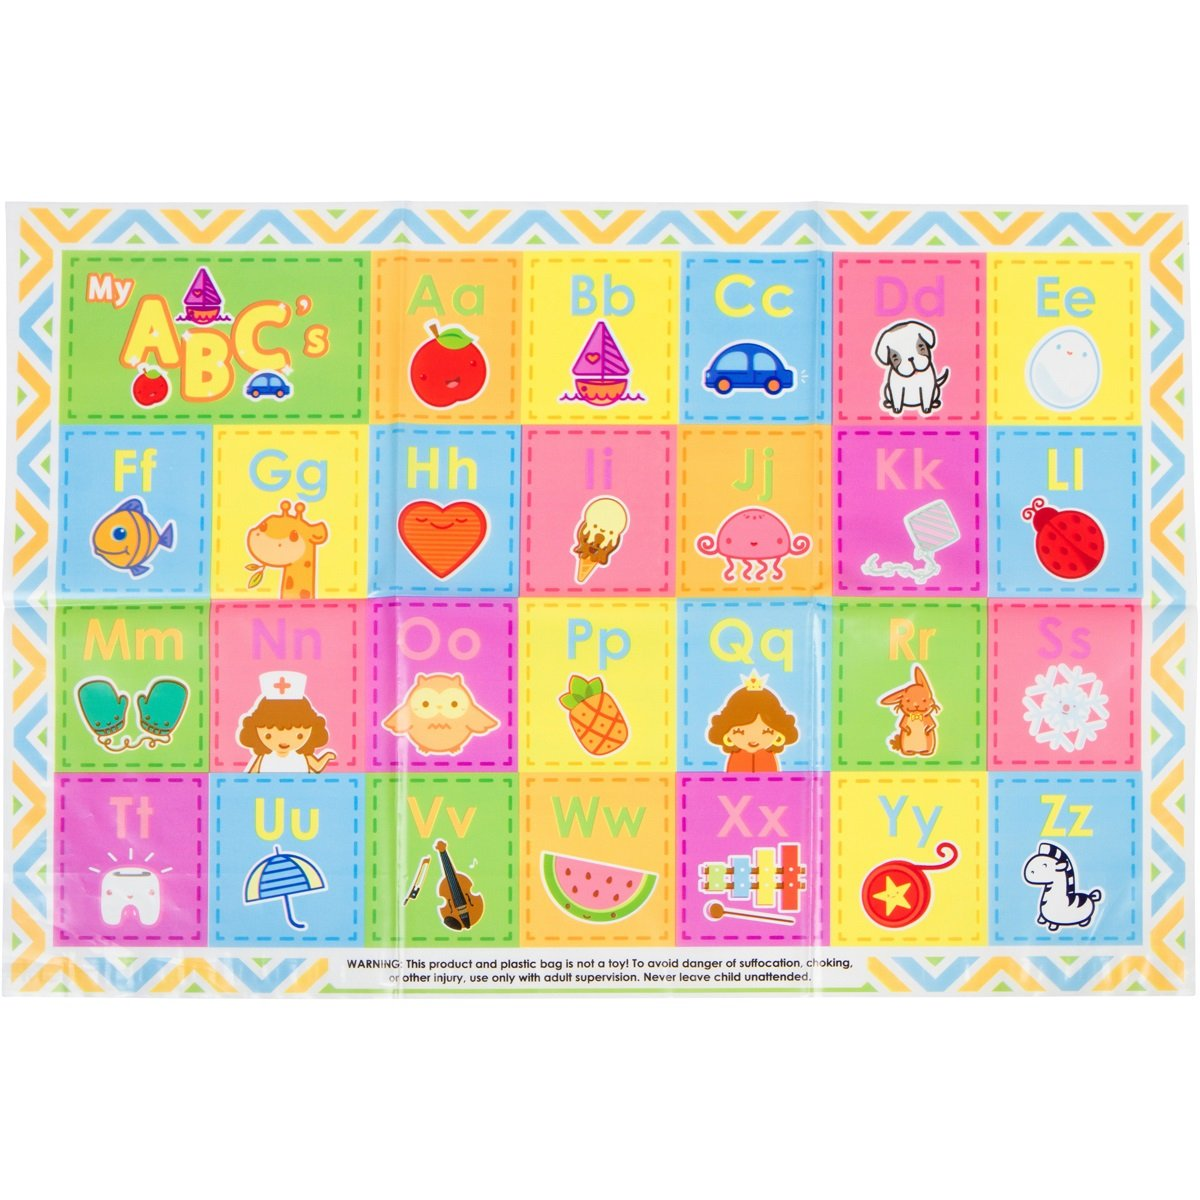 60 Pack - Disposable Placemats - Children's ABC Topper for Table by Eat Smart